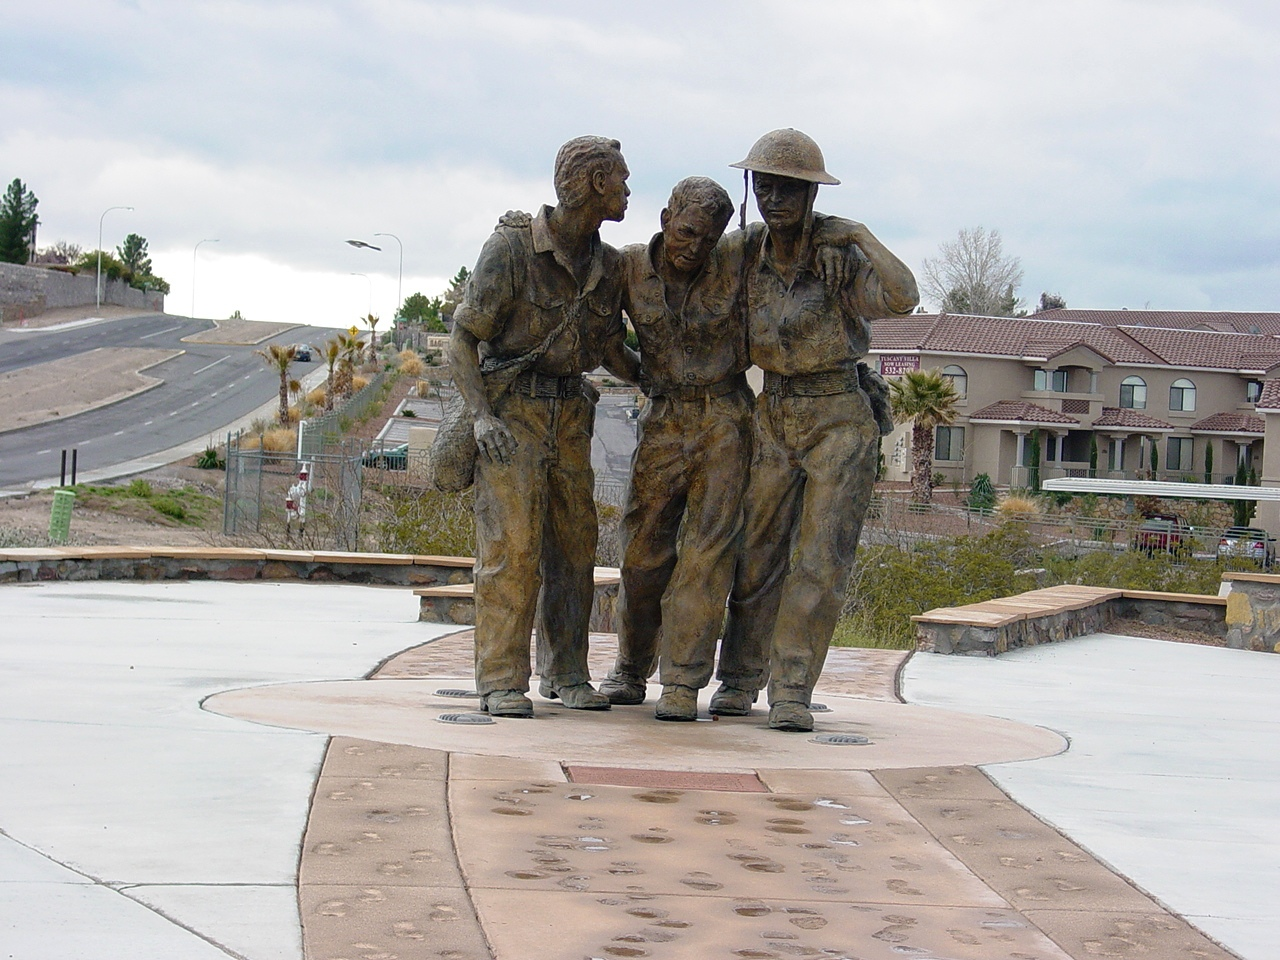 Statue of Bataan Death March walkers, located at Veterans Memorial Park, Las Cruces, NM.